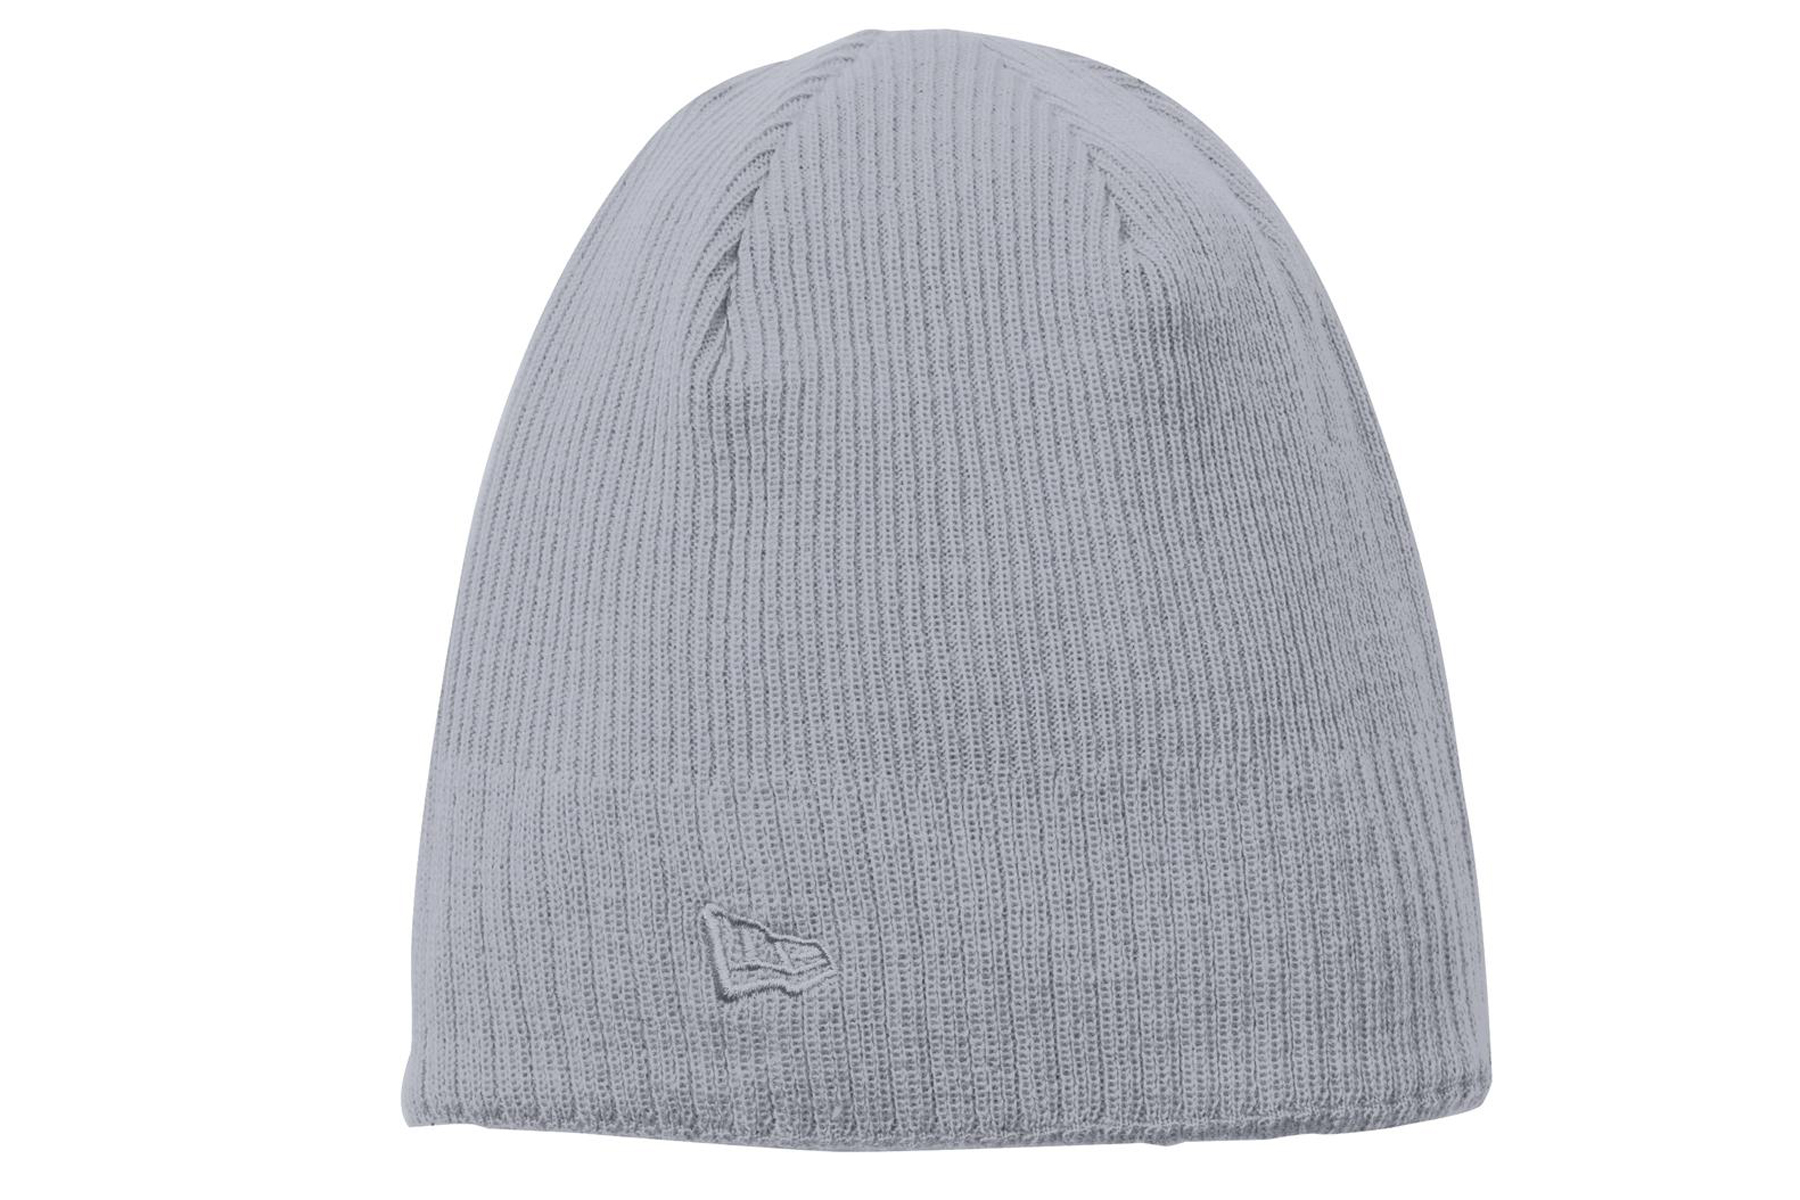 Caps-Fleece-Beanies-17